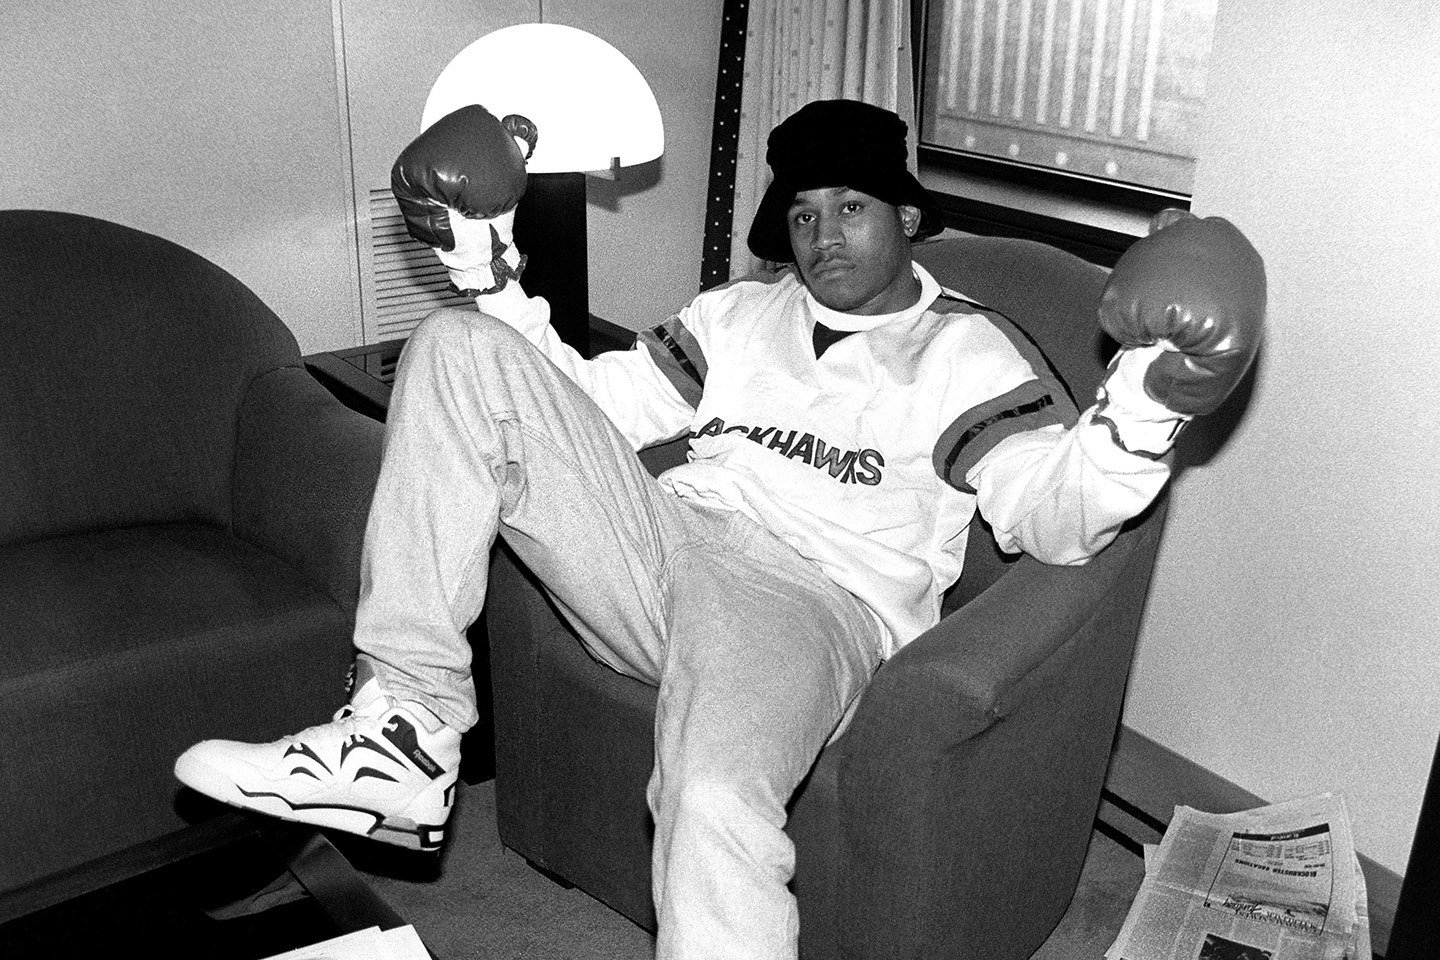 Happy 49th birthday to LL Cool J!